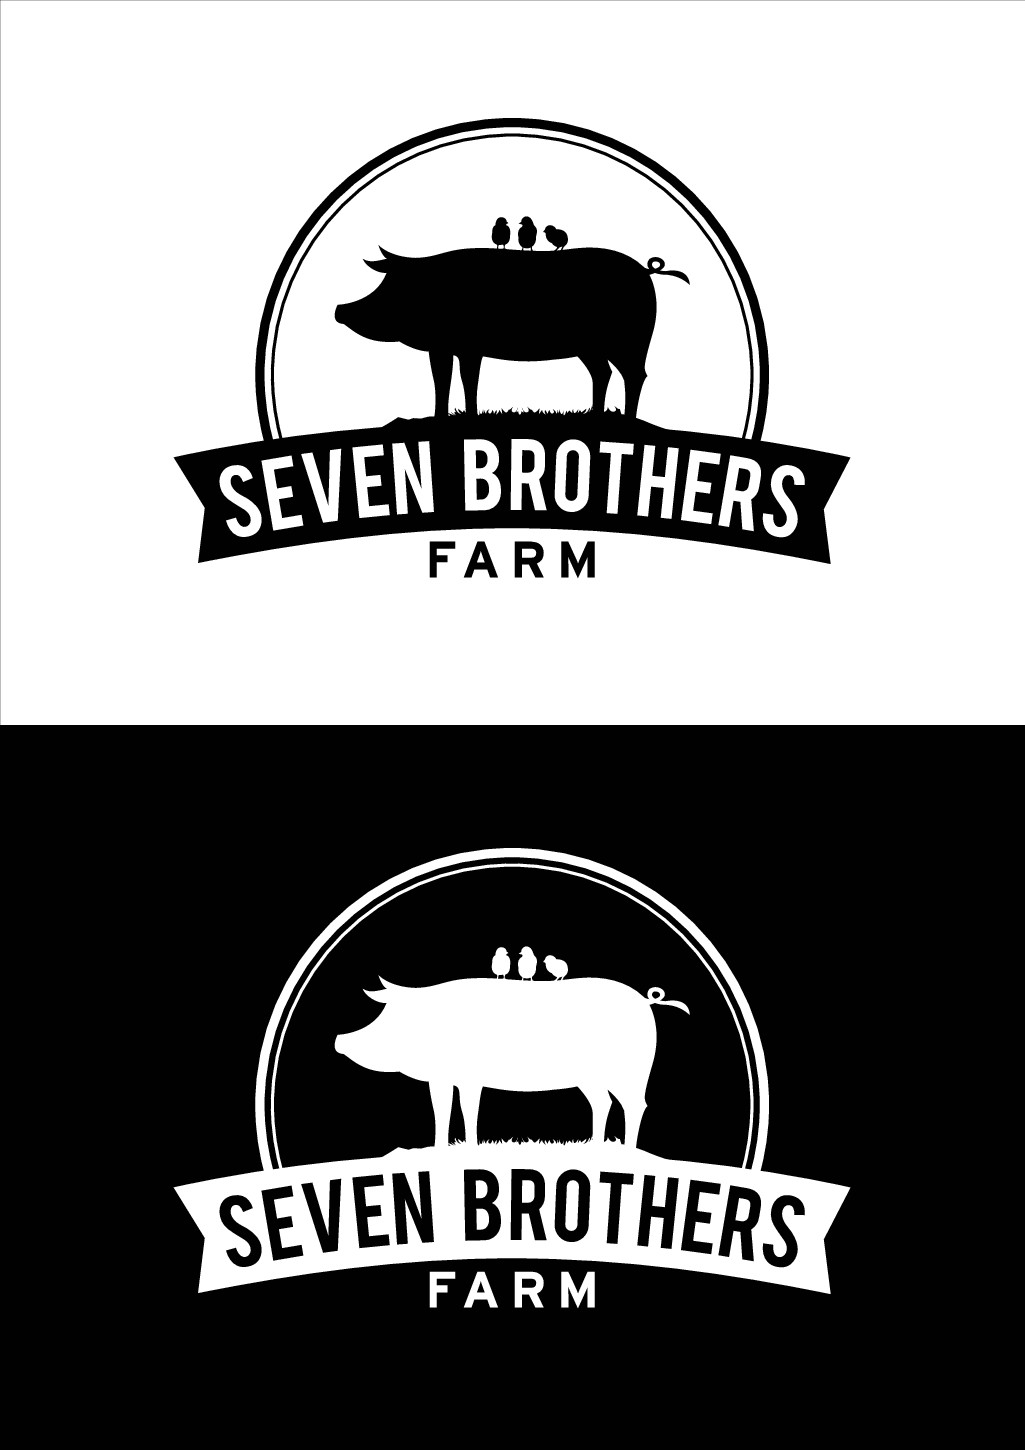 Design a simple eye-catching logo for Seven Brothers Farm